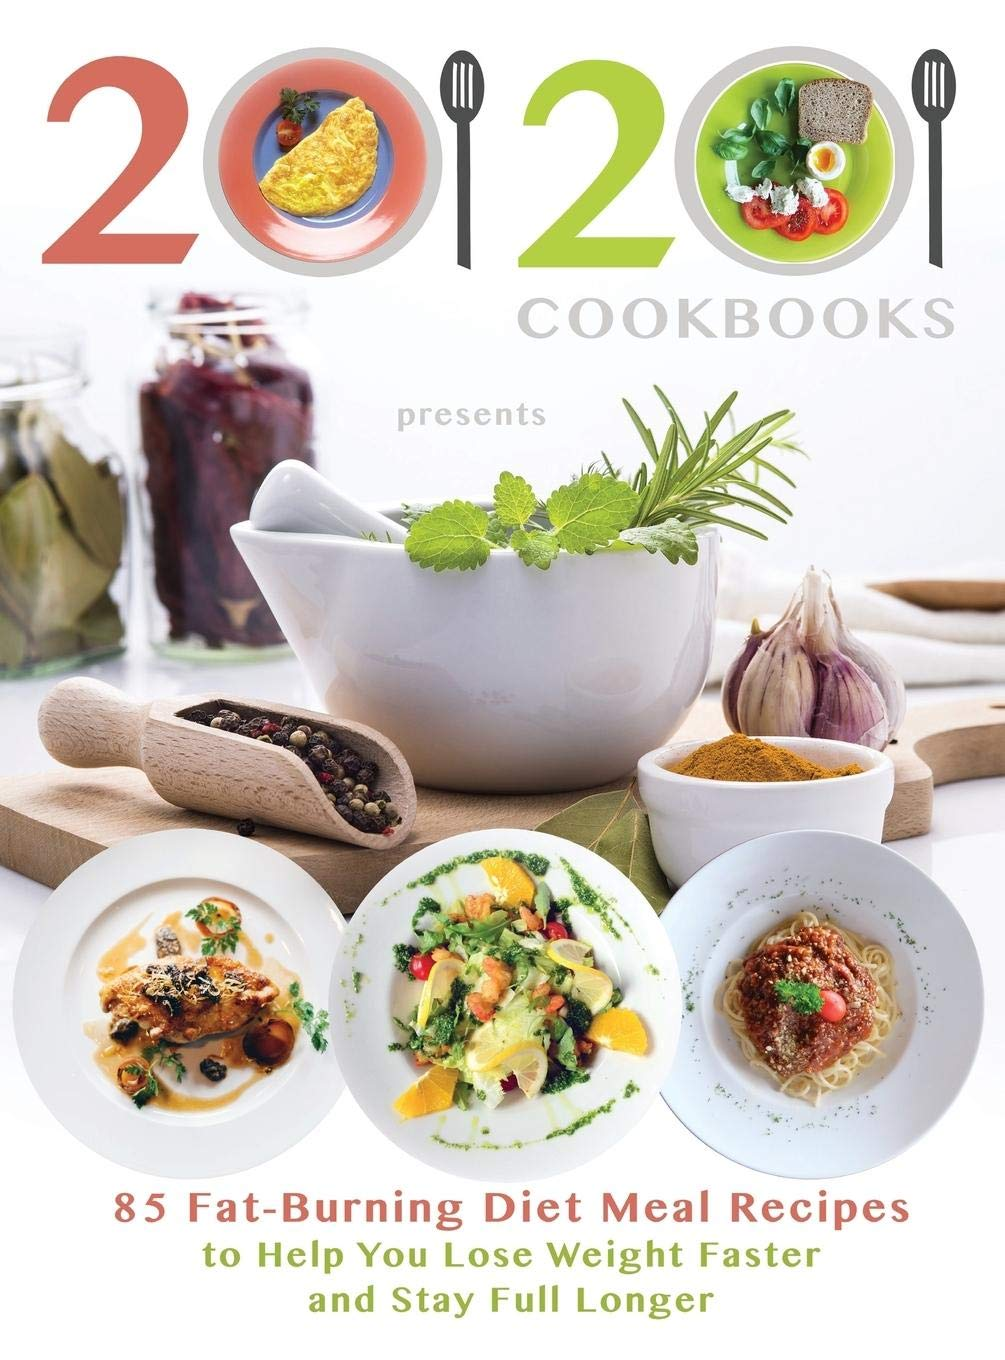 20/20 Cookbooks Presents: 85 Fat-Burning Diet Meal Recipes to Help You Lose Weight Faster and Stay Full Longer 1